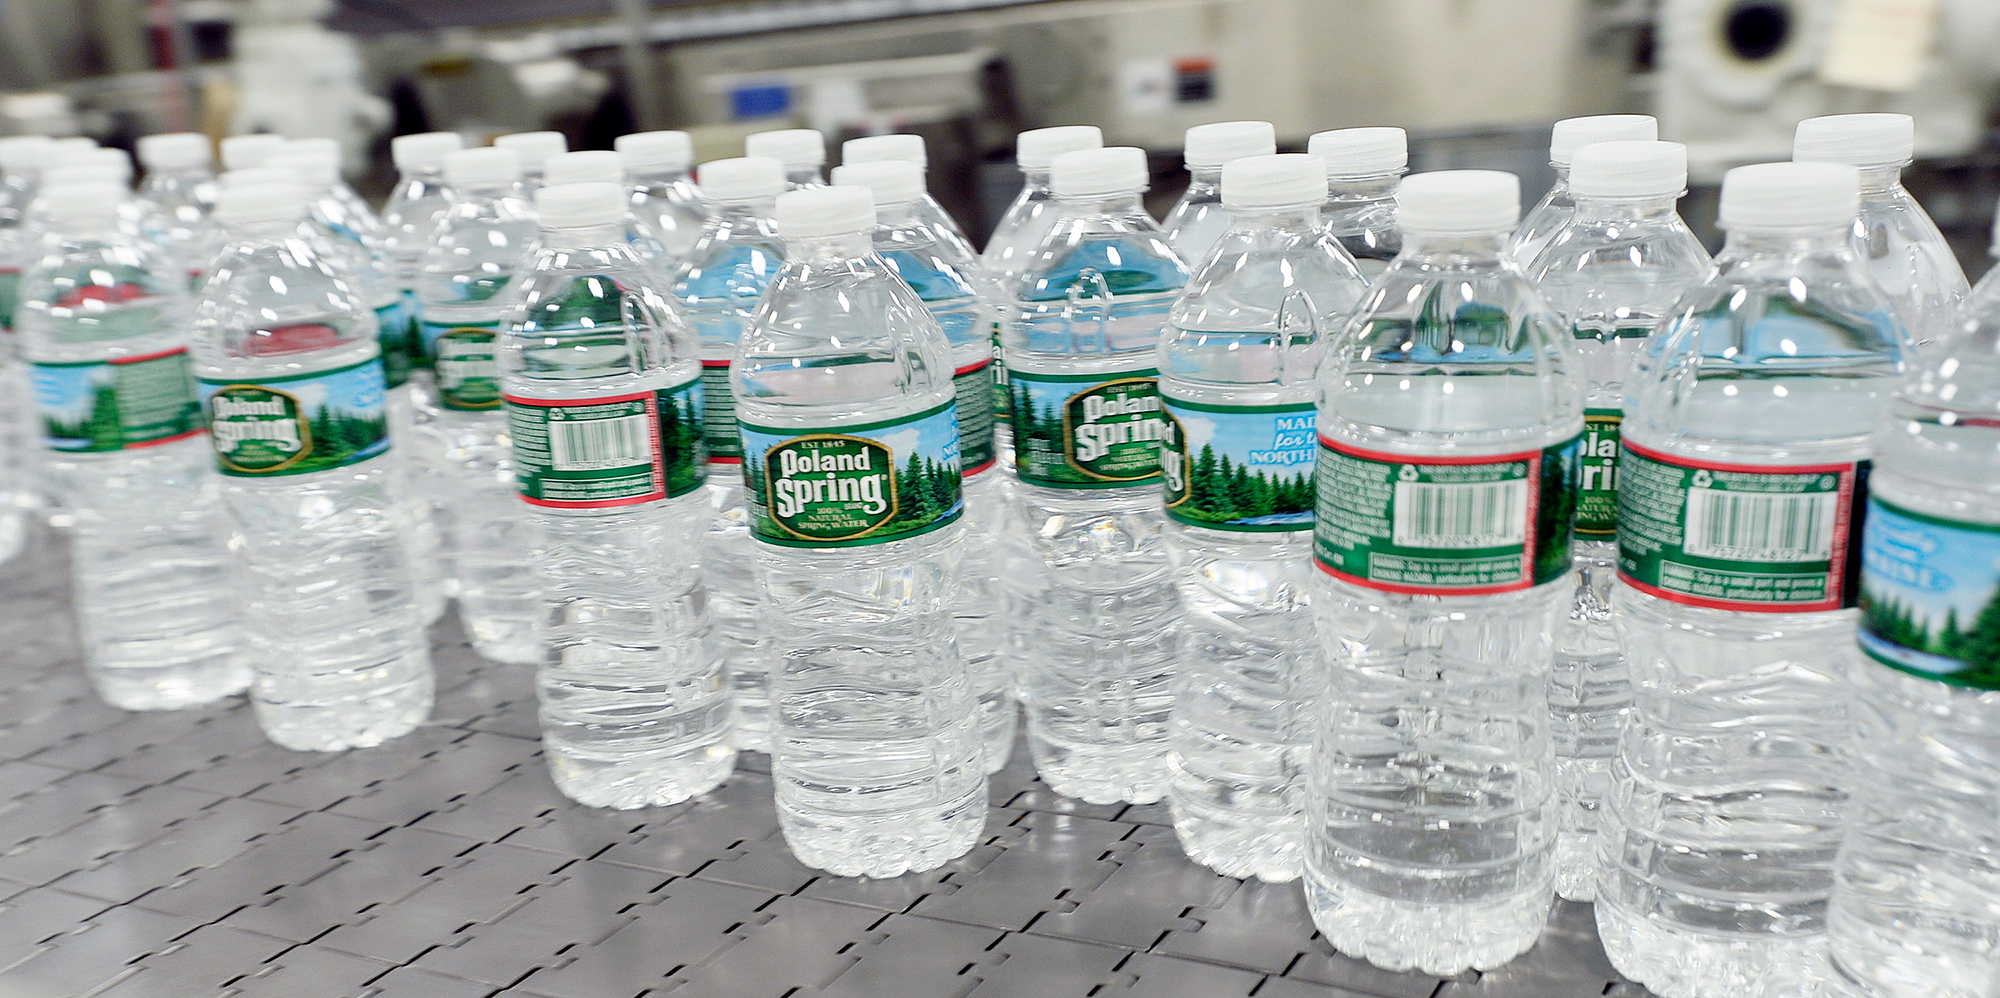 Poland Spring Will Soon Use Only Recycled Plastic to Make Their Water Bottles